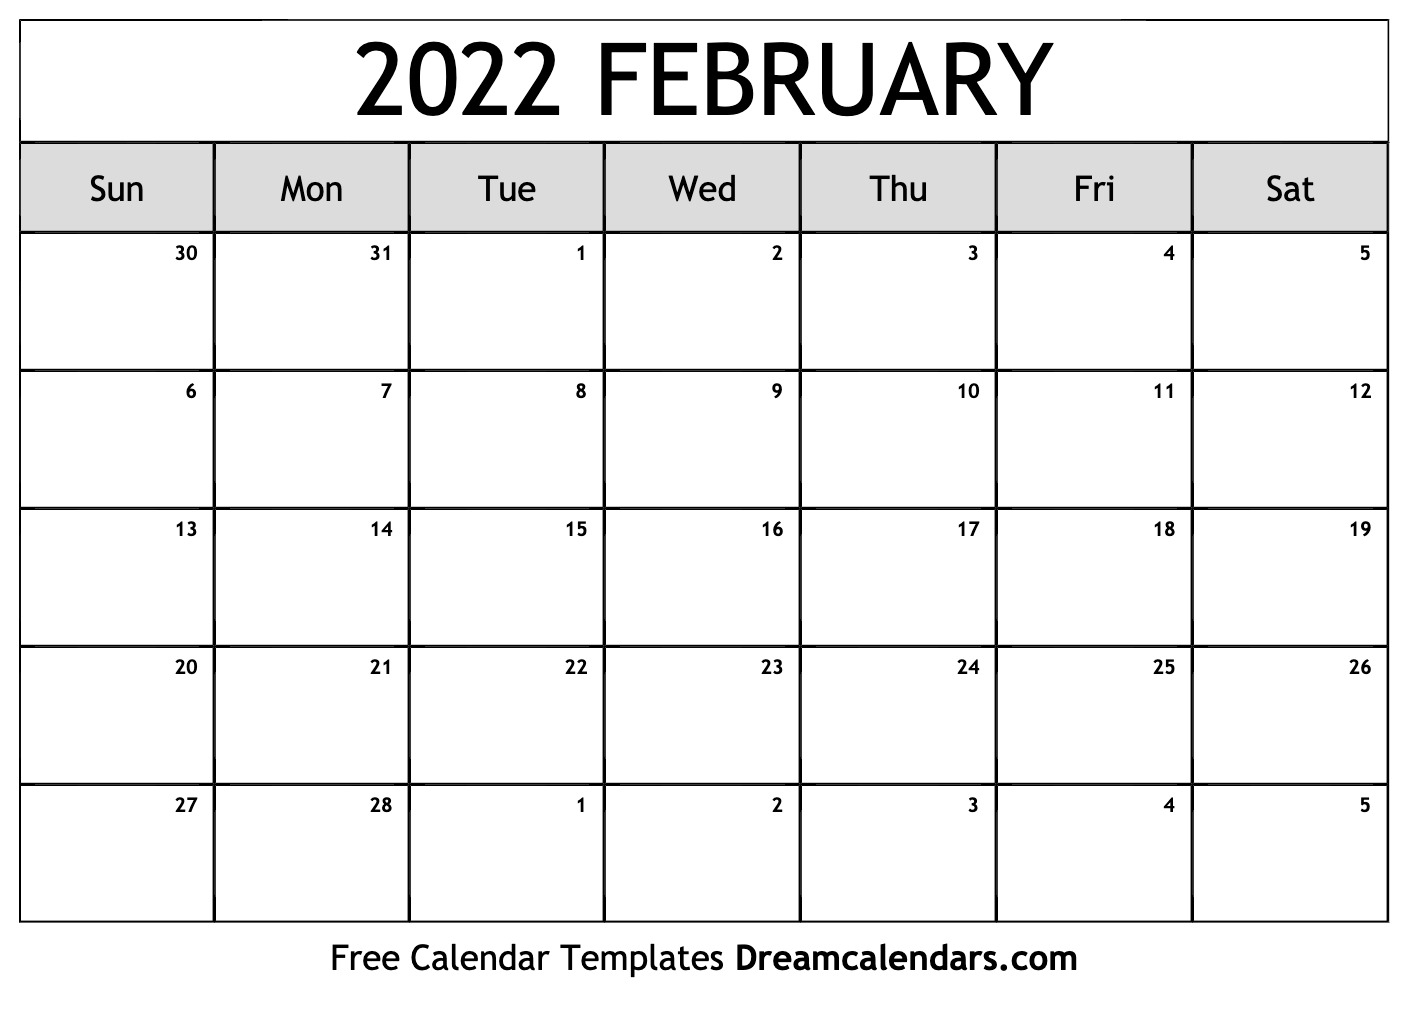 February 2022 Calendar   Free Blank Printable Templates Intended For February 2022 Month Calendar Page